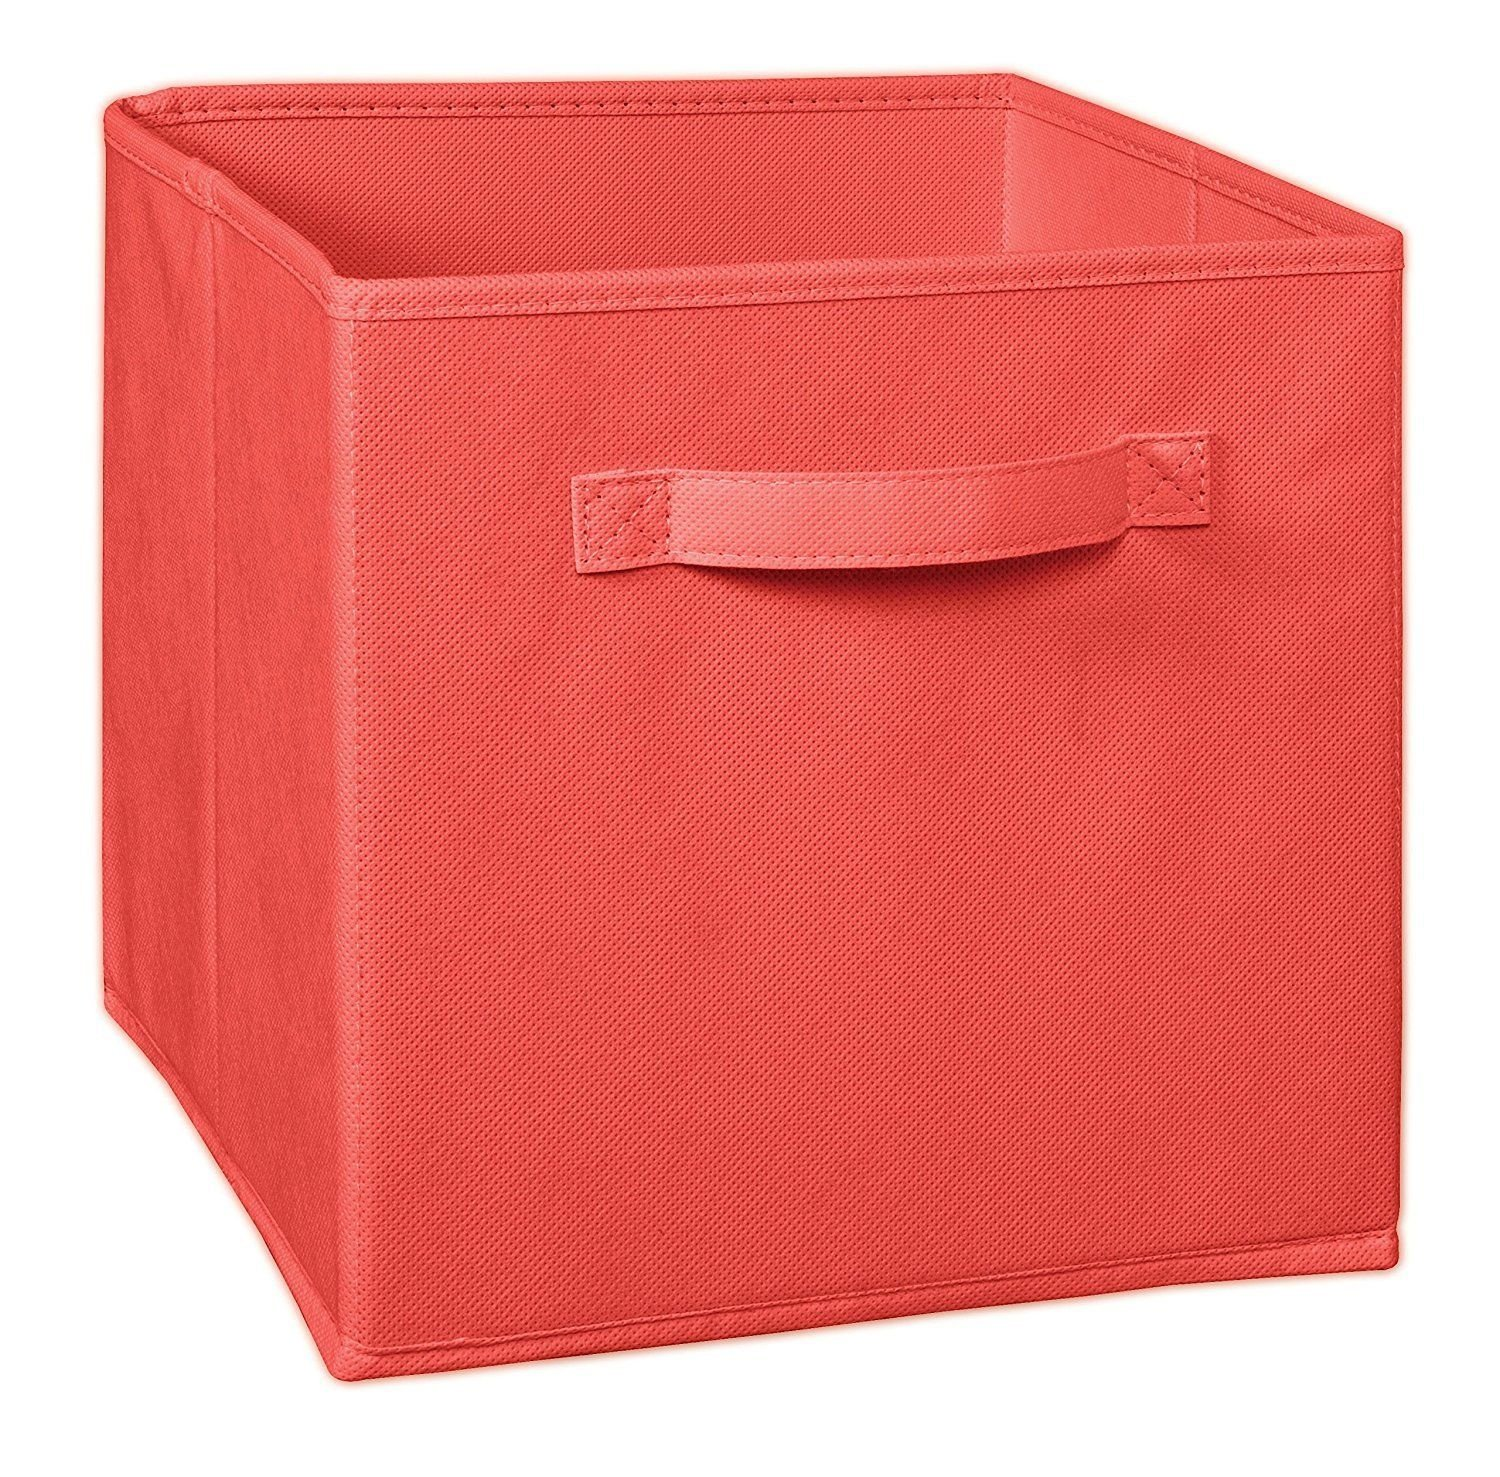 Merveilleux Amazon.com: Coral Color Cube Foldable Storage Basket Bins Organizer Box  Closet Container Fabric Drawers: Home U0026 Kitchen